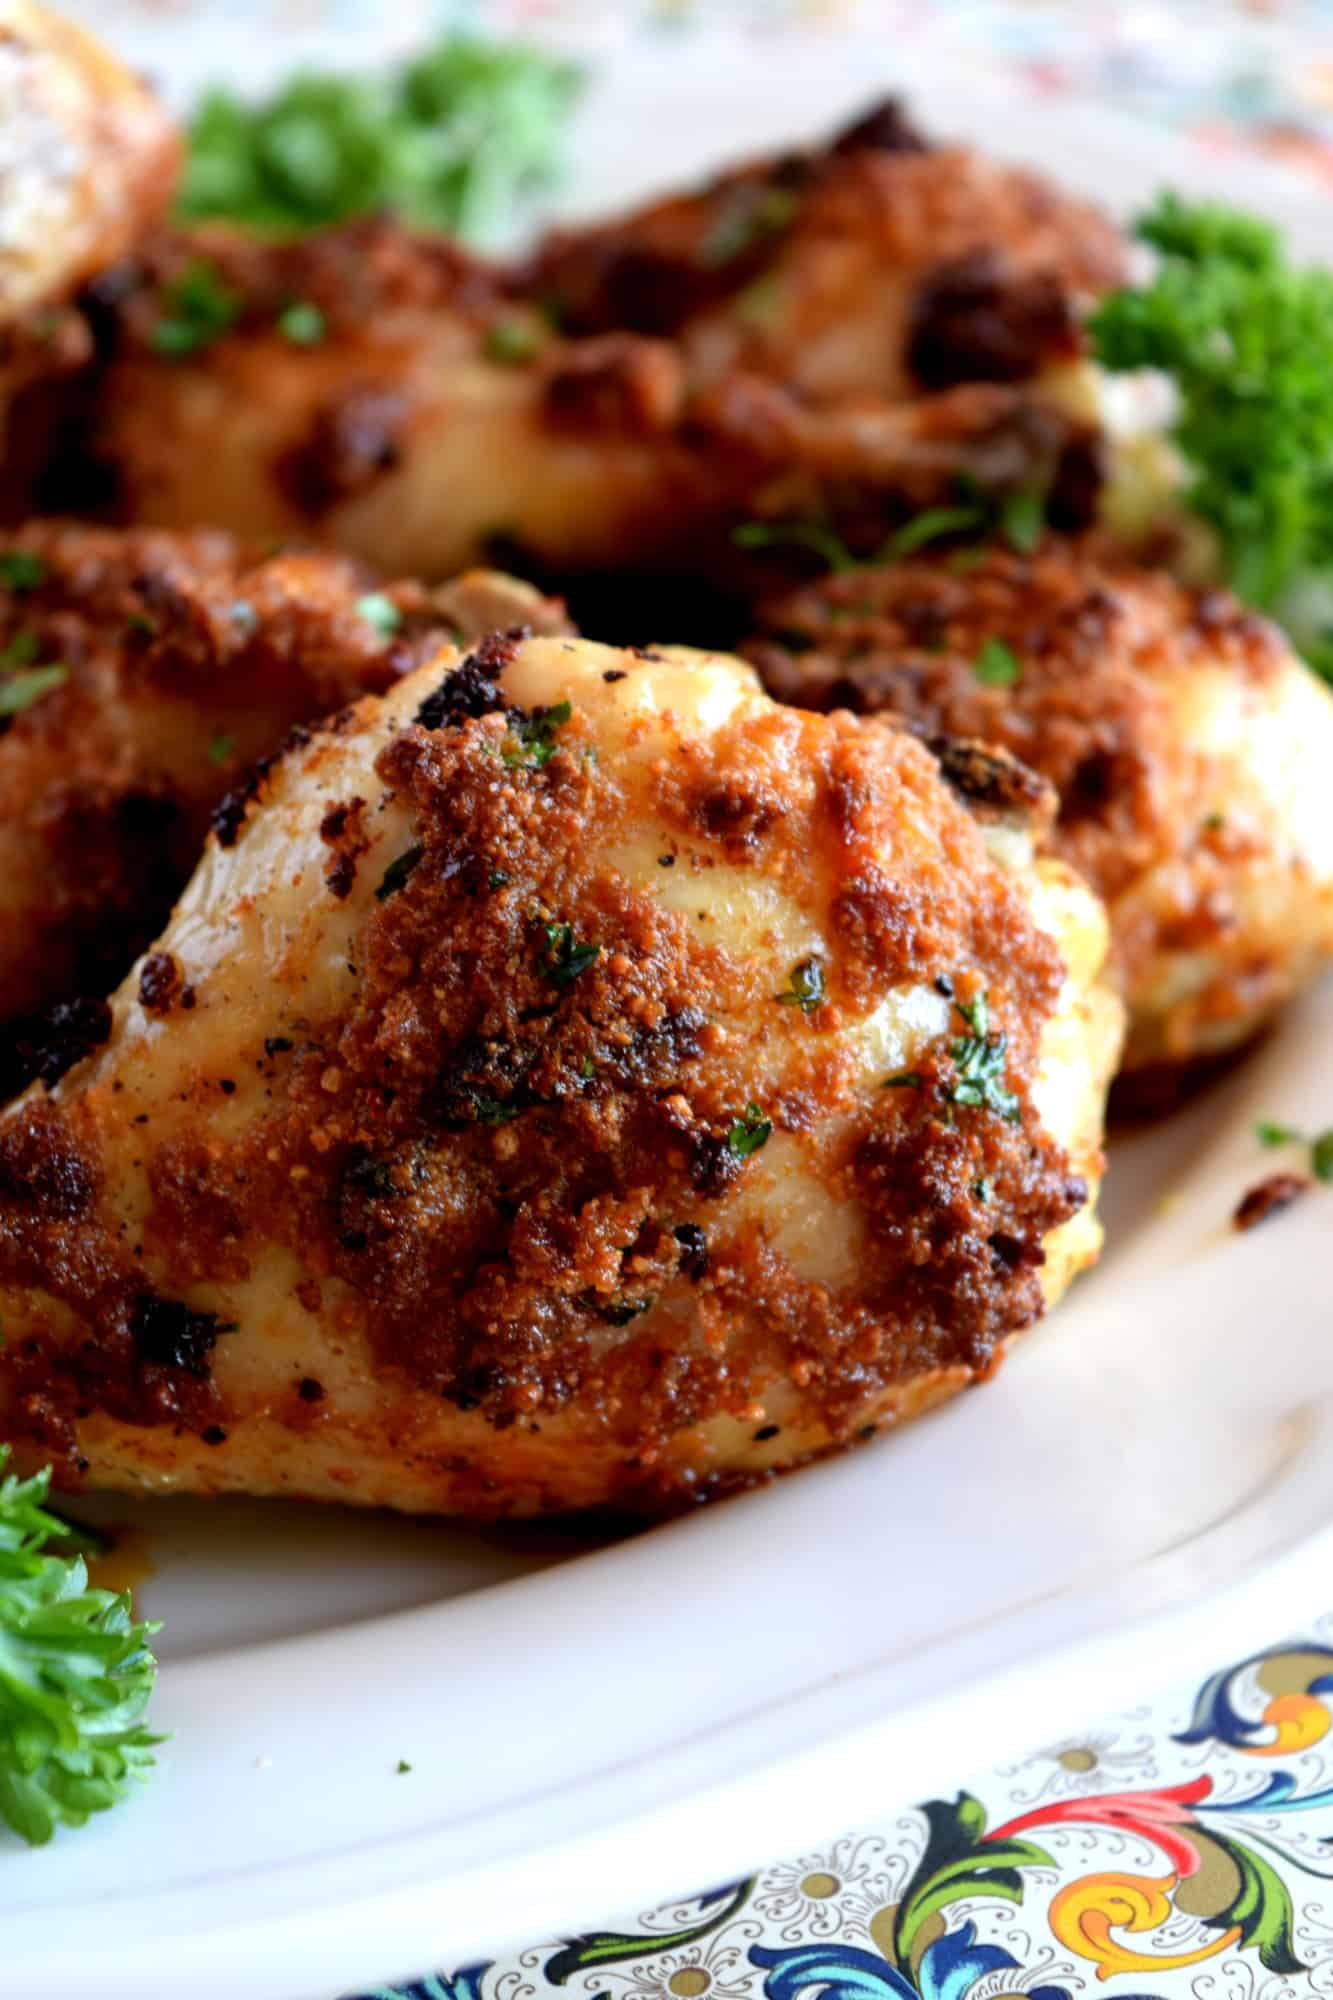 Chicken Like This Particular Dish Is Perfect Anytime But Is Most Certainly Geared Toward After Work Weeknight Cooking Even Though I Live With Two